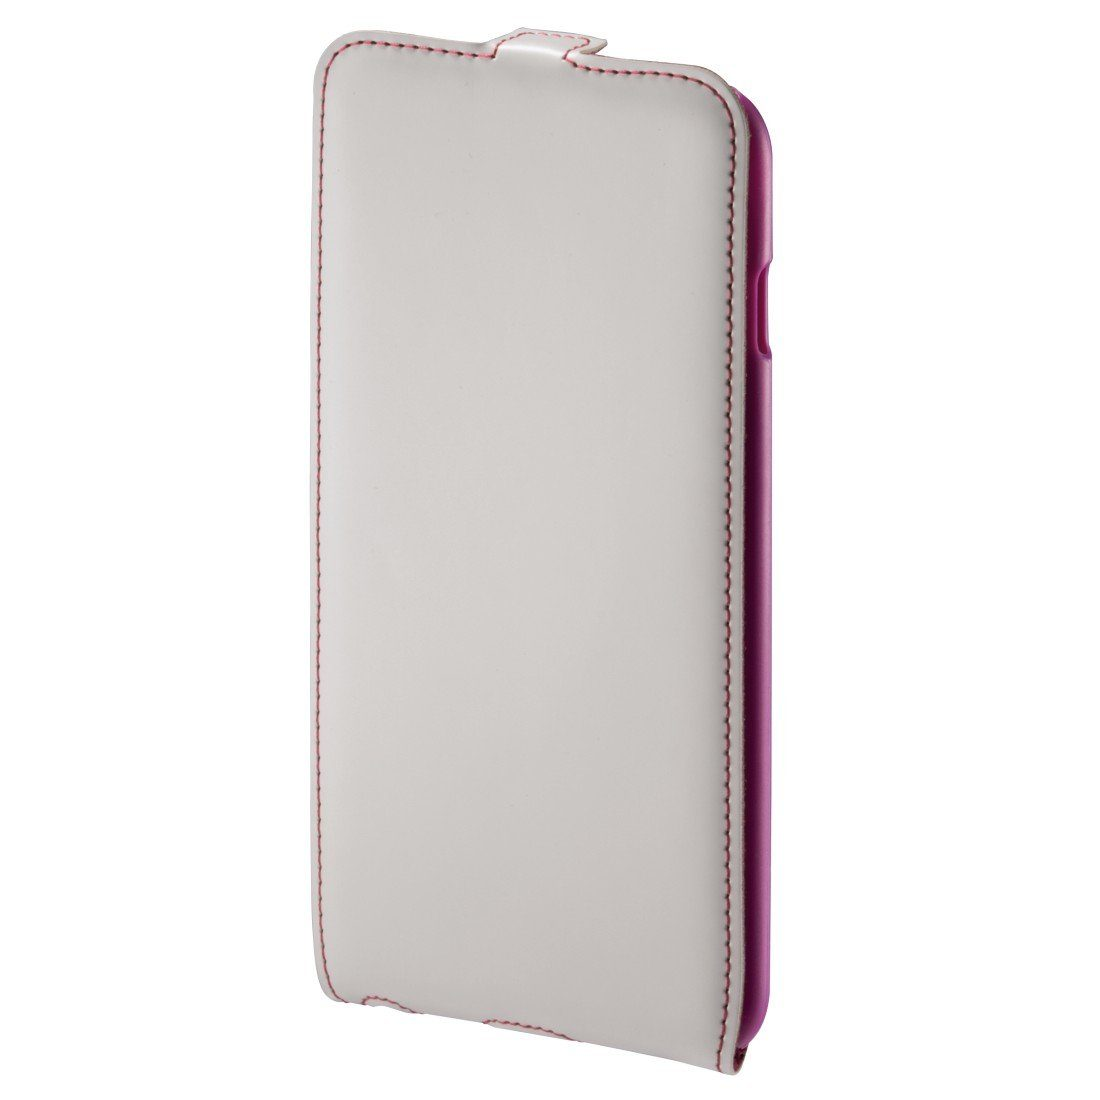 Hama Flap-Tasche Guard Case für Apple iPhone 6 Plus, Weiß/Pink